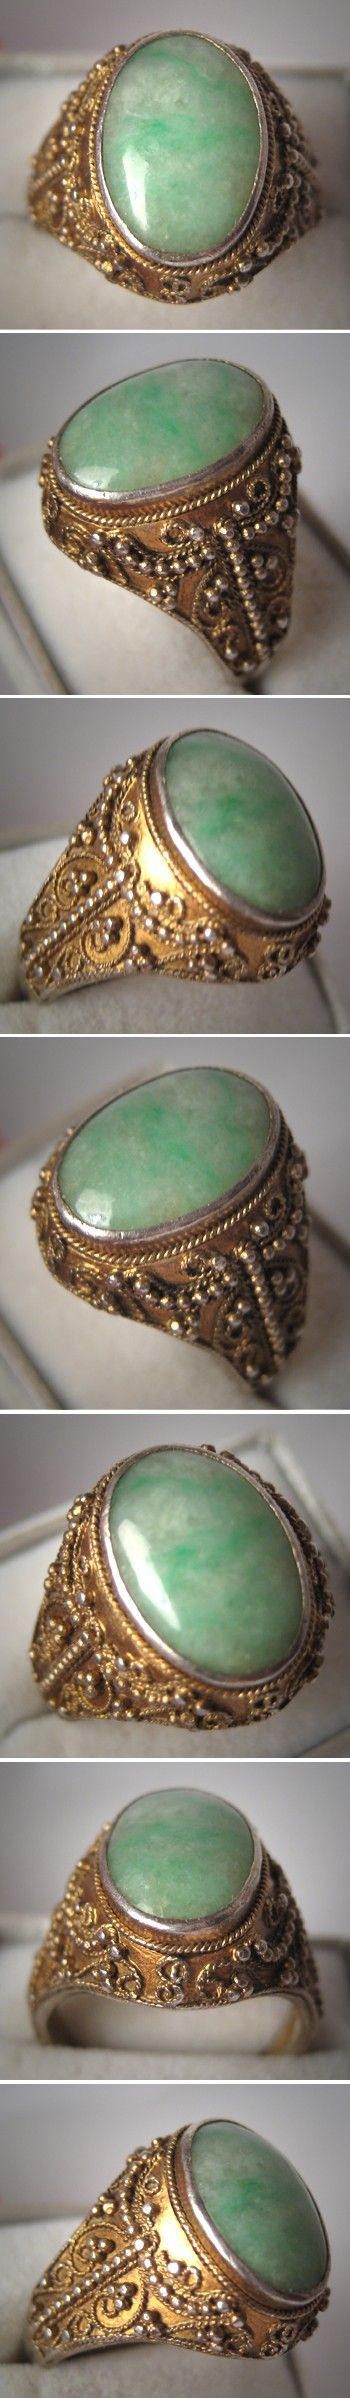 Antique Jade Ring Vintage Etruscan Gold Gilt Jewelry - Wedding